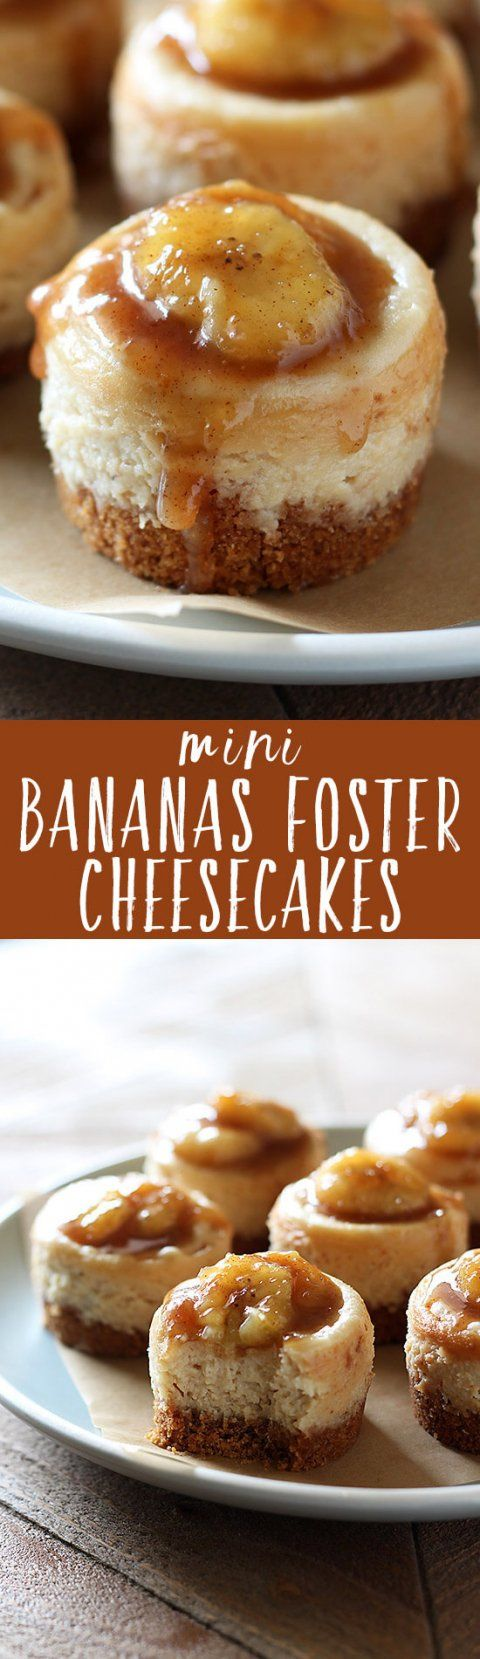 Everyone loves bananas foster but when added to cheesecake?! Too good!!